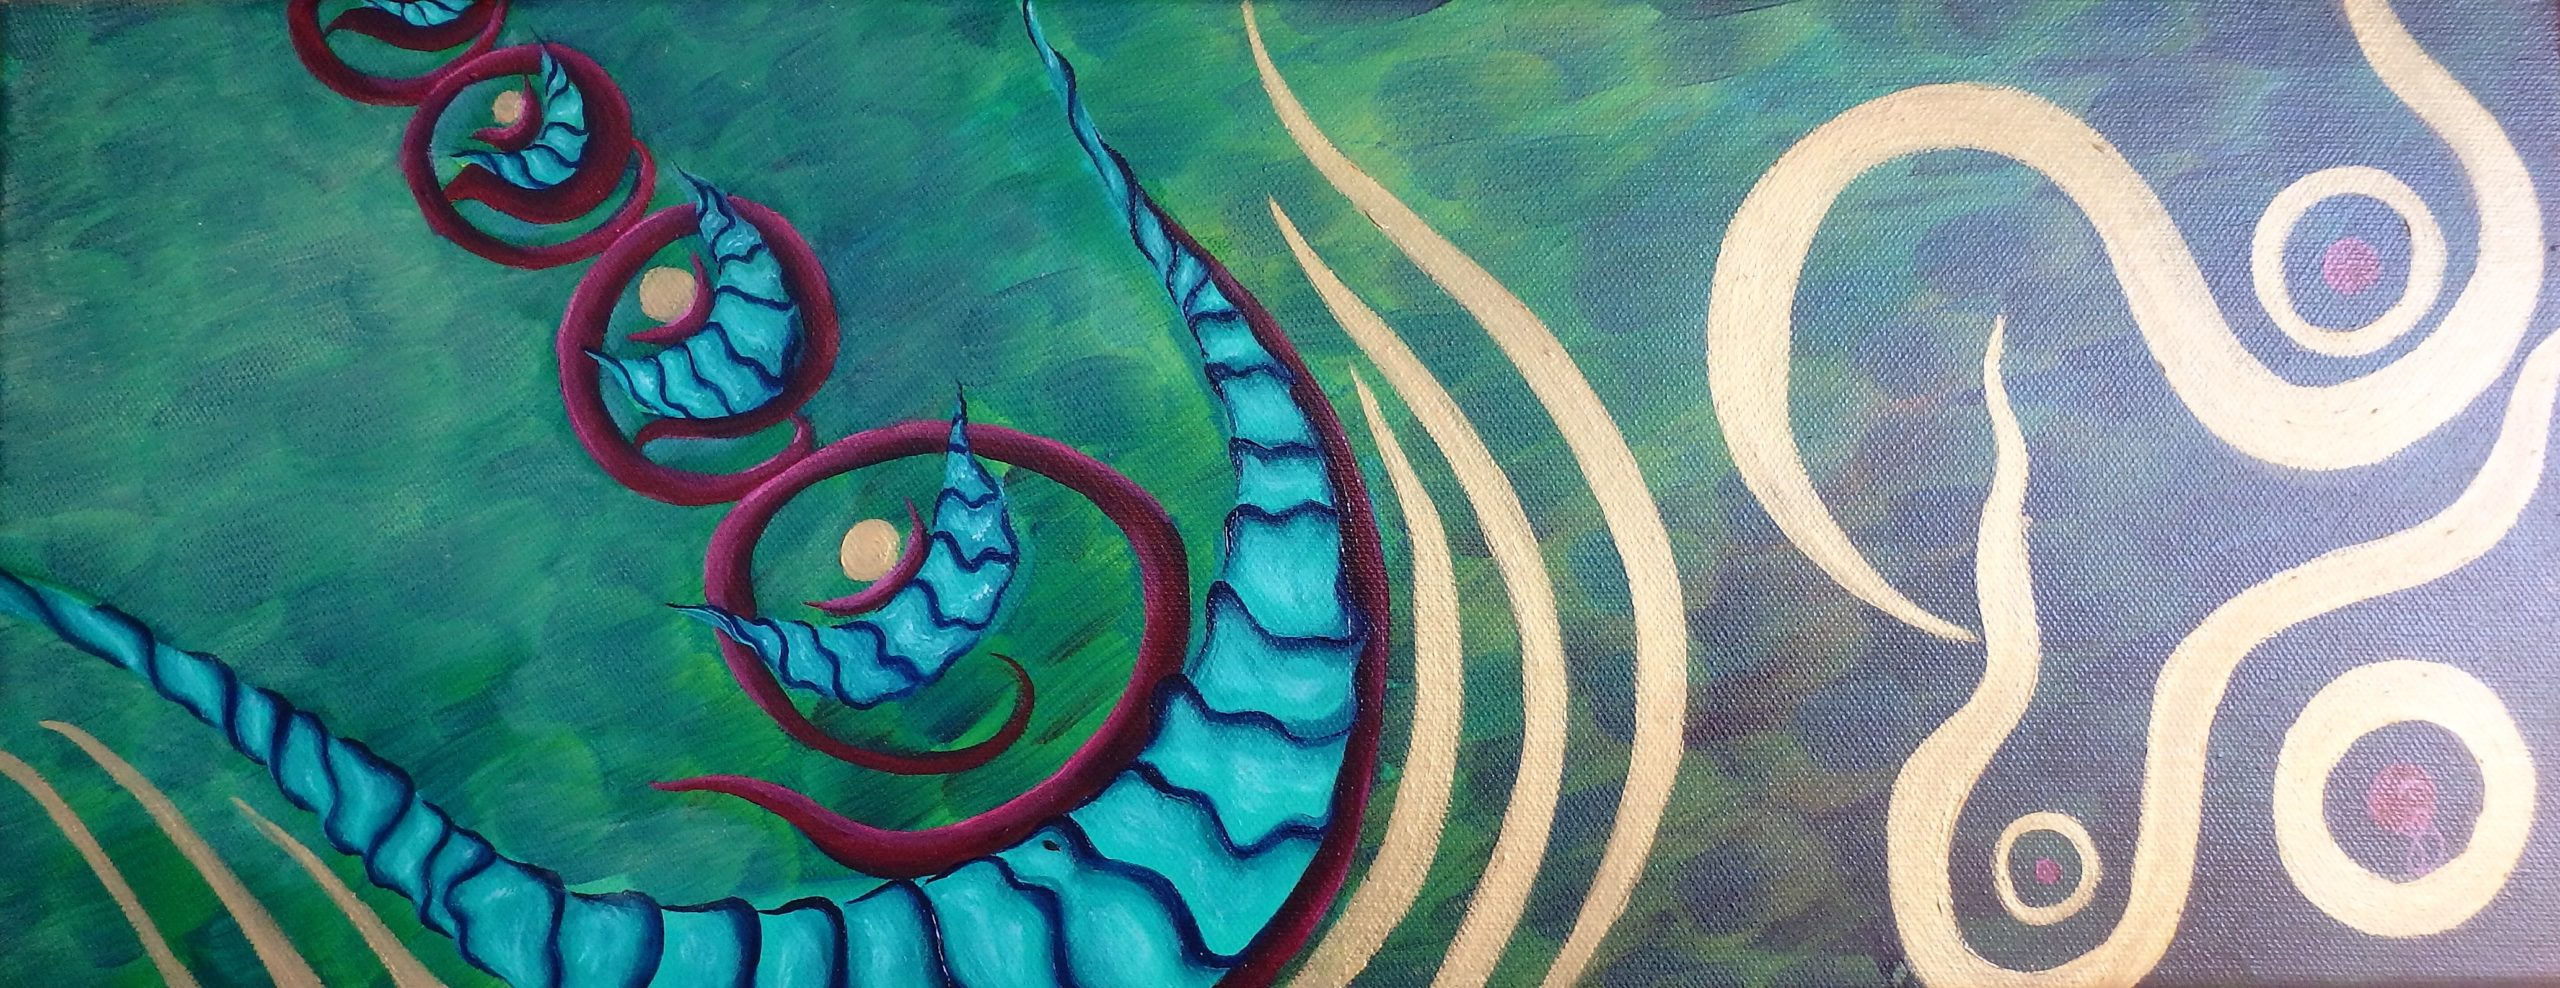 The Arch of the Blue Dragon, oil on canvas, 20x50cm, available